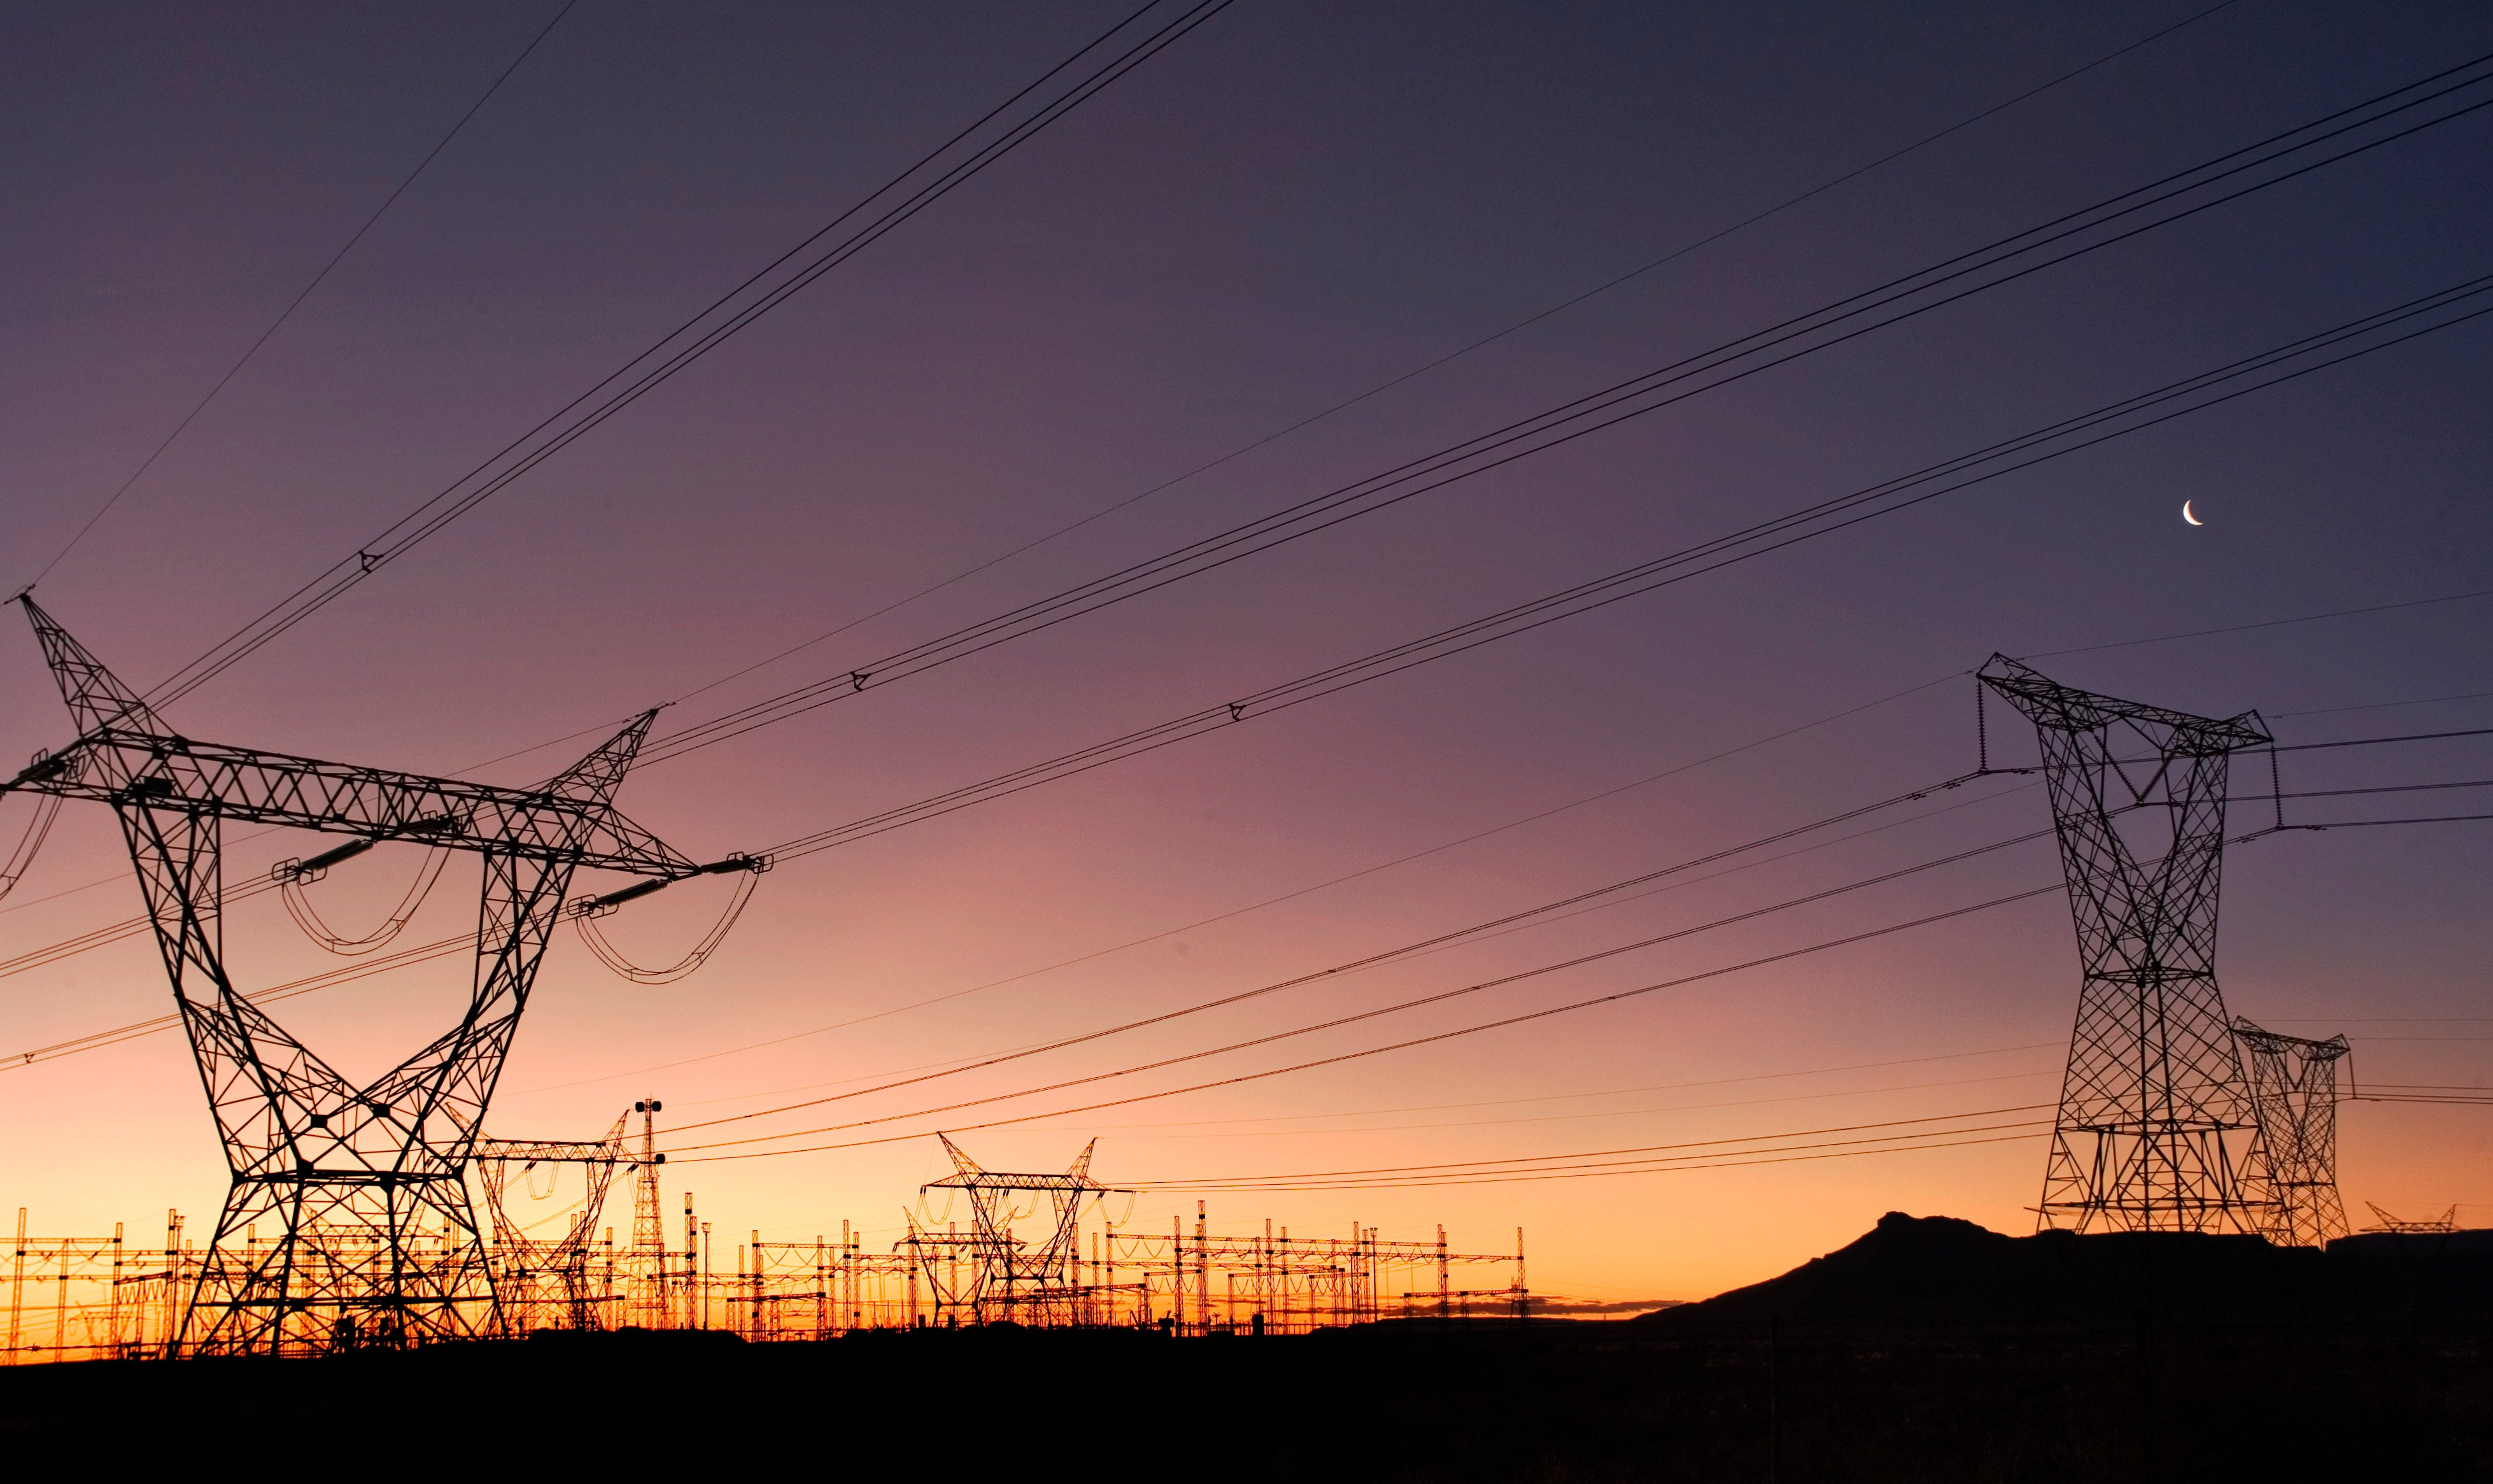 Electricity pylons outside the town of Beaufort West in April 2008. Photo: Chris Kirchhoff/MediaClubSouthAfrica.com